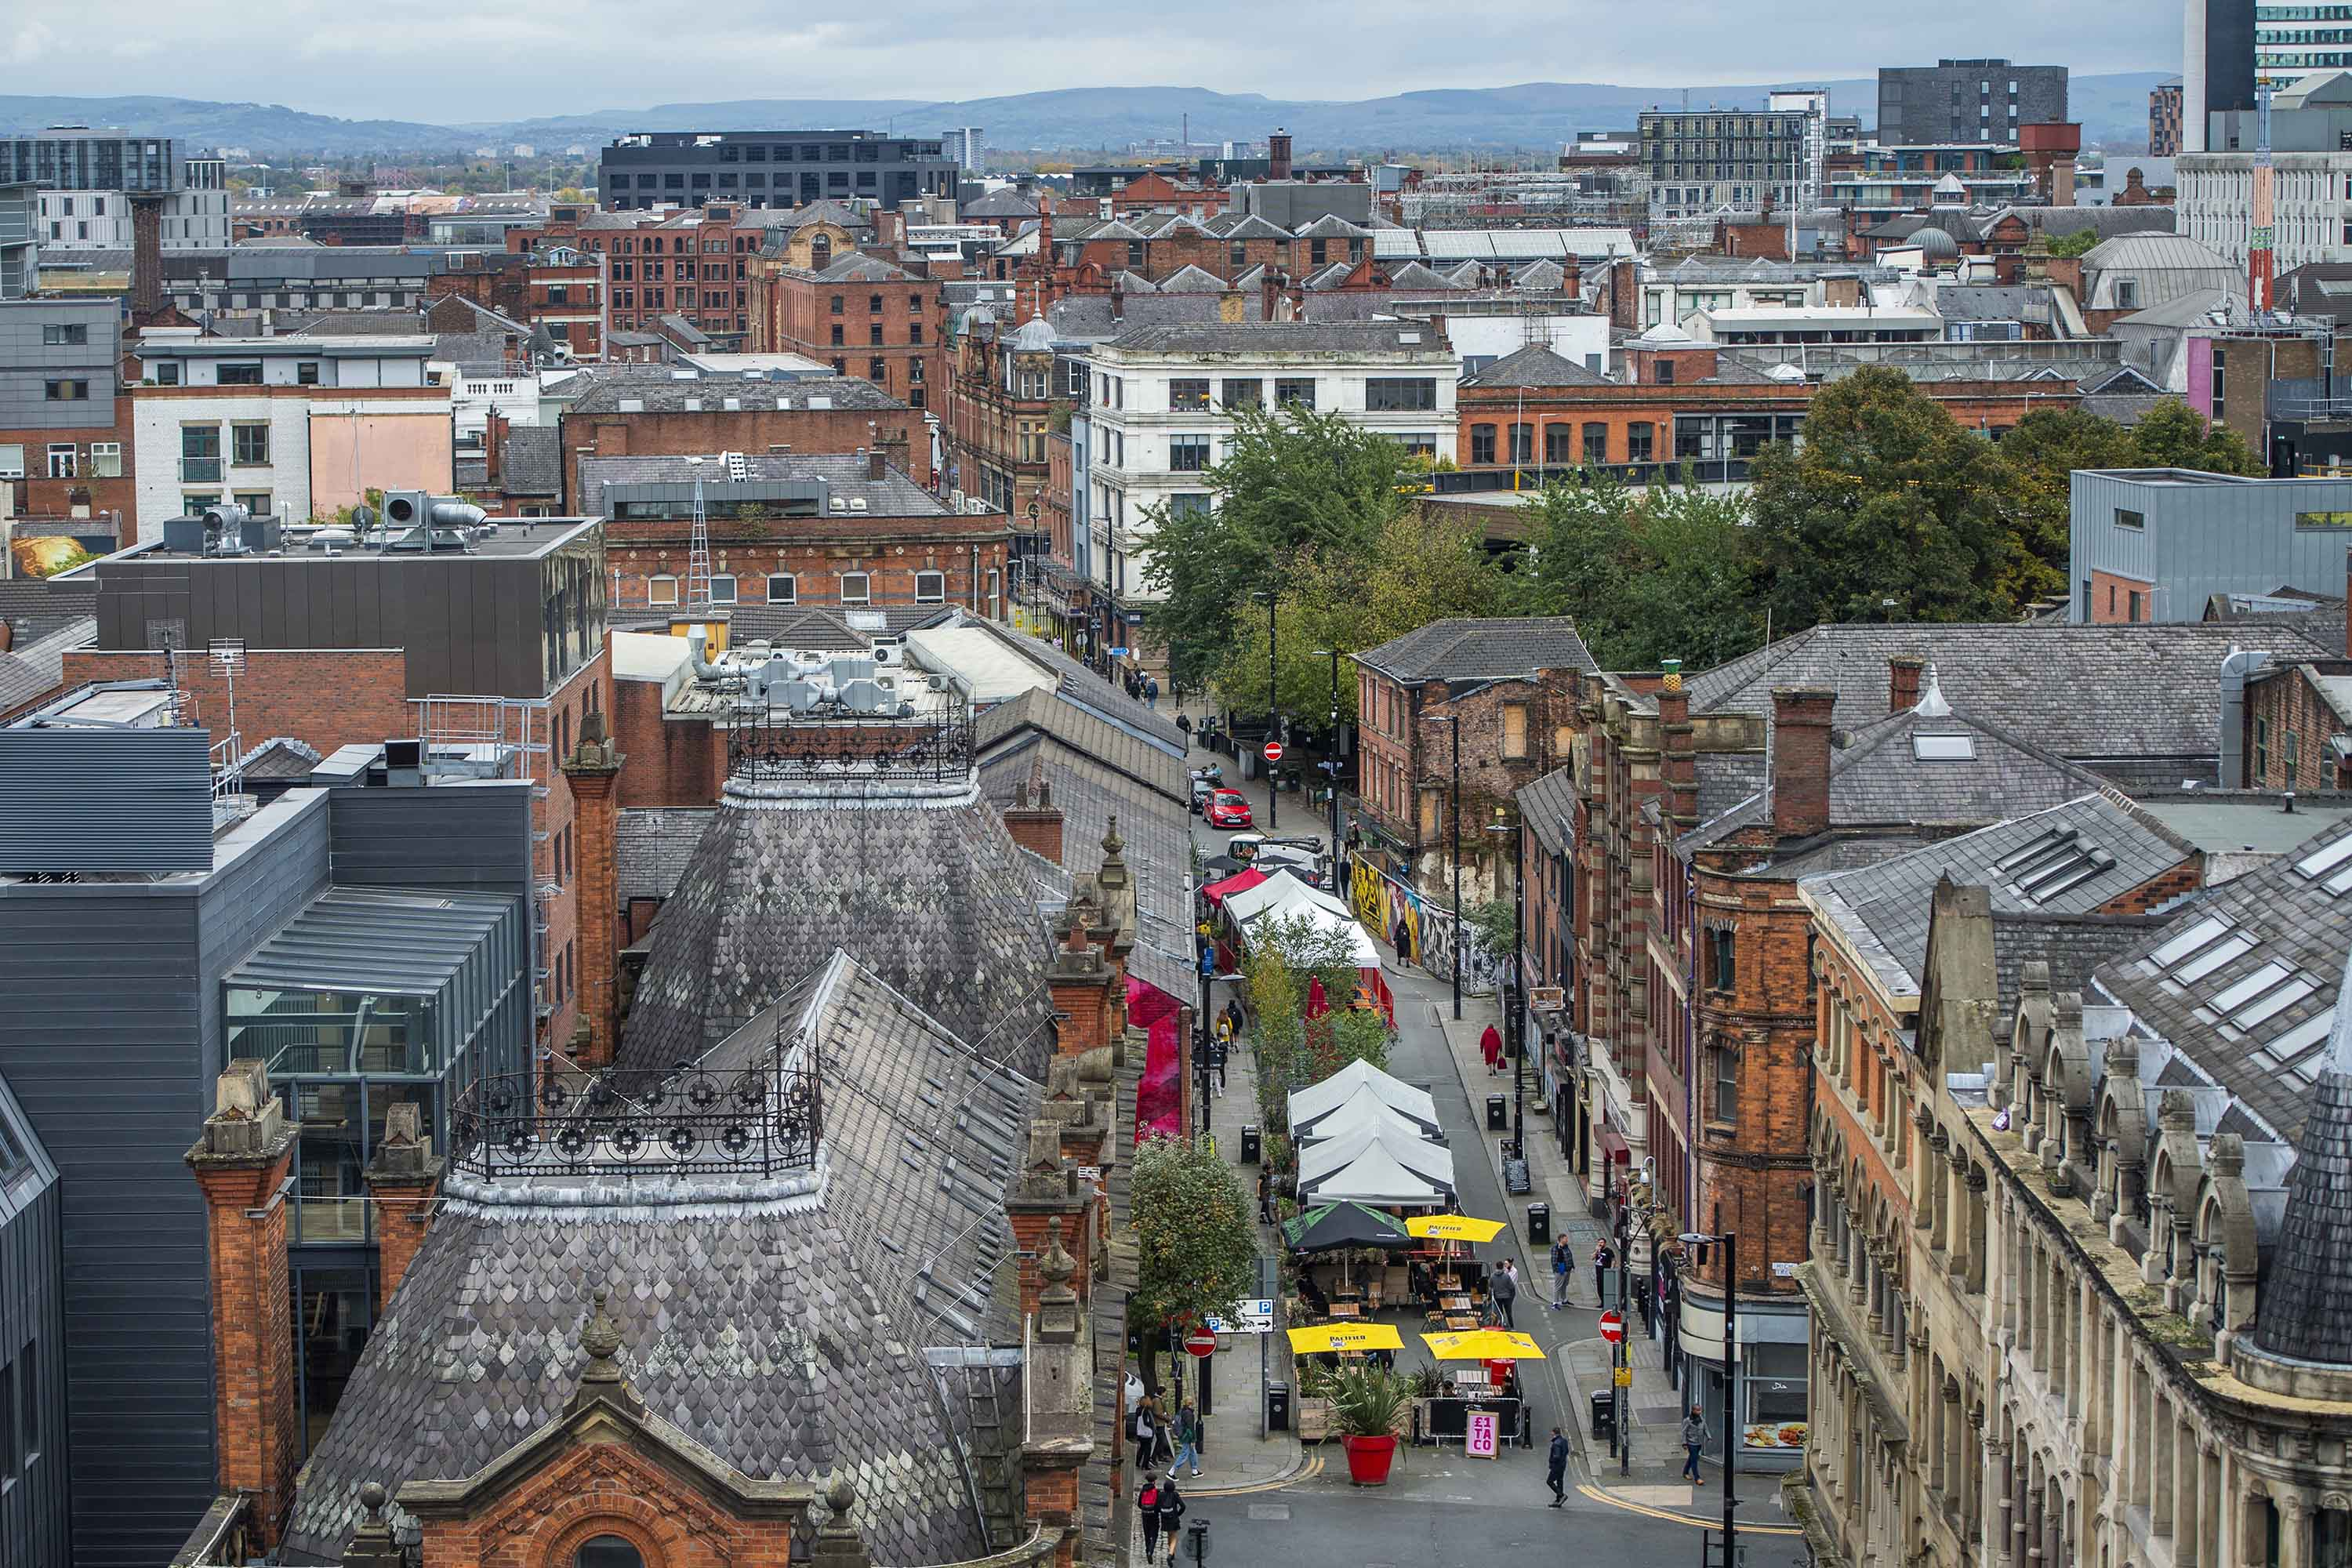 An overview show's outdoor seating areas for bars along Dale Street in Manchester, England, on Friday, October 16.